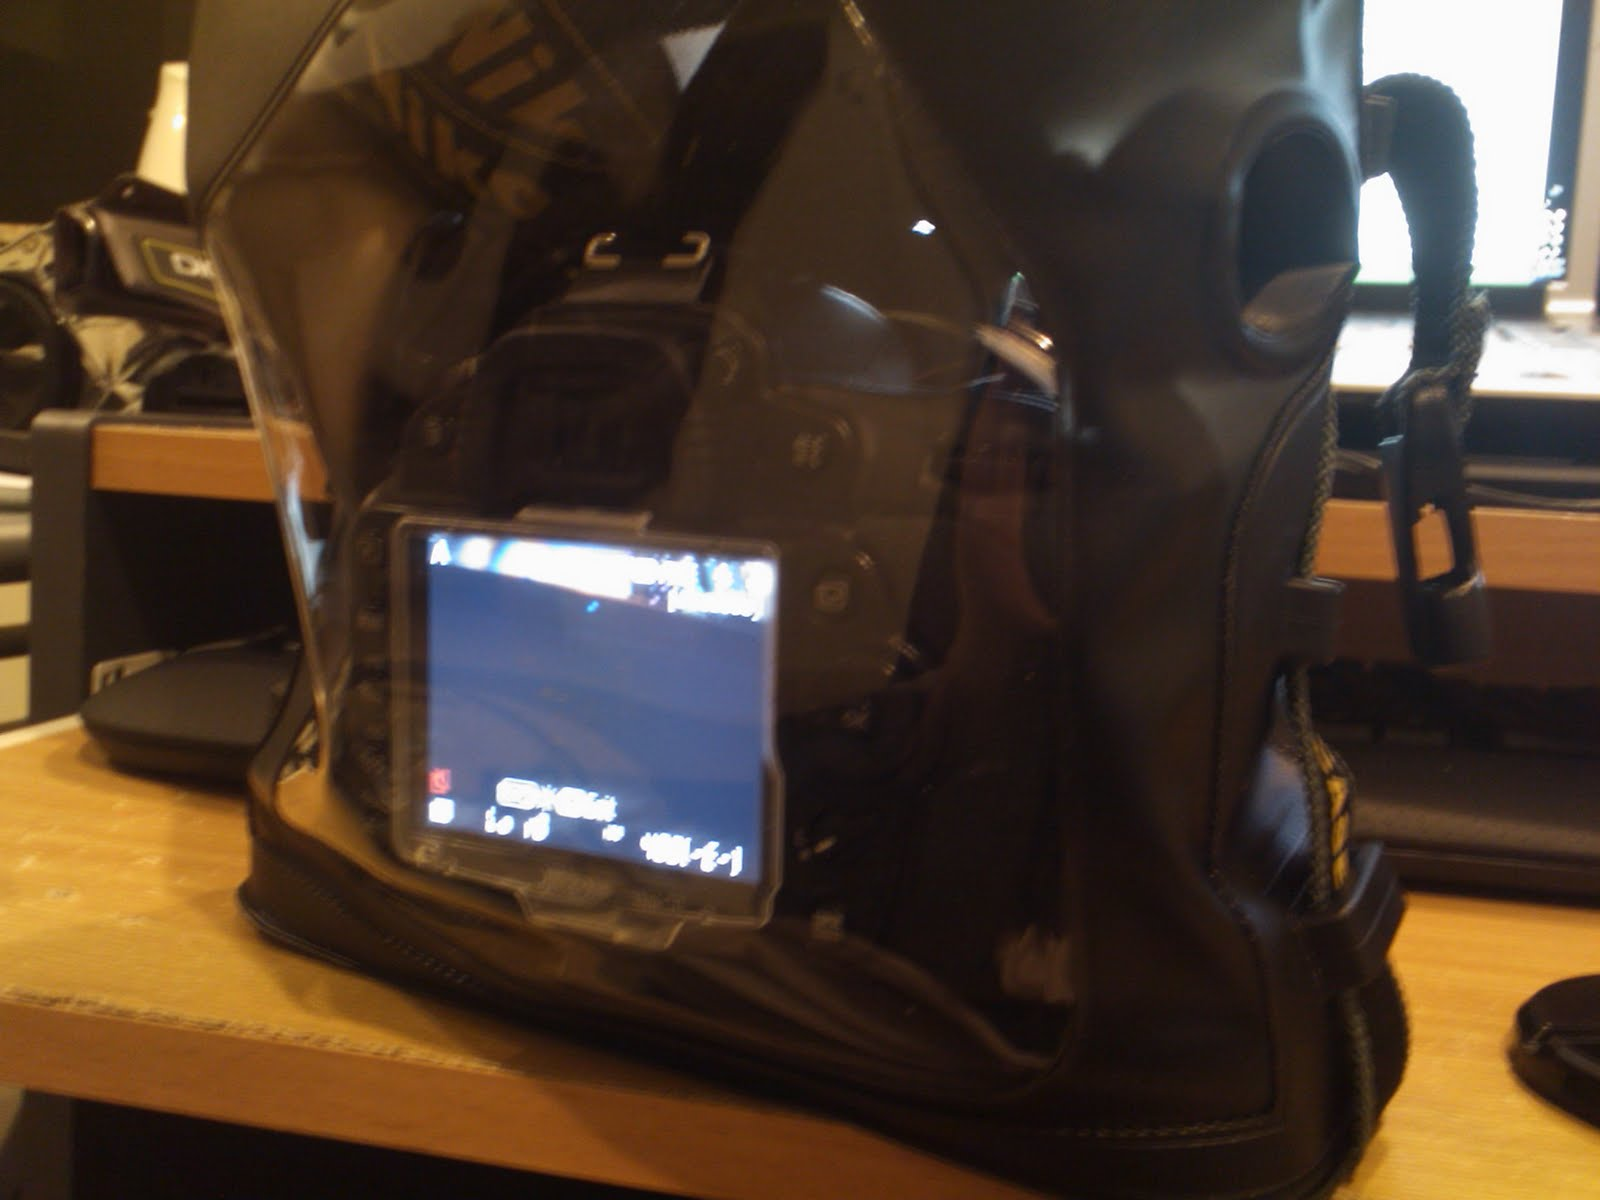 Anthonyleong Diary Dicapac Wp S10 D20 Part 1 Updated Waterproof Case For Slr Dslr Cameras First Round Of Testing And Video Cam In With D90 Liveview